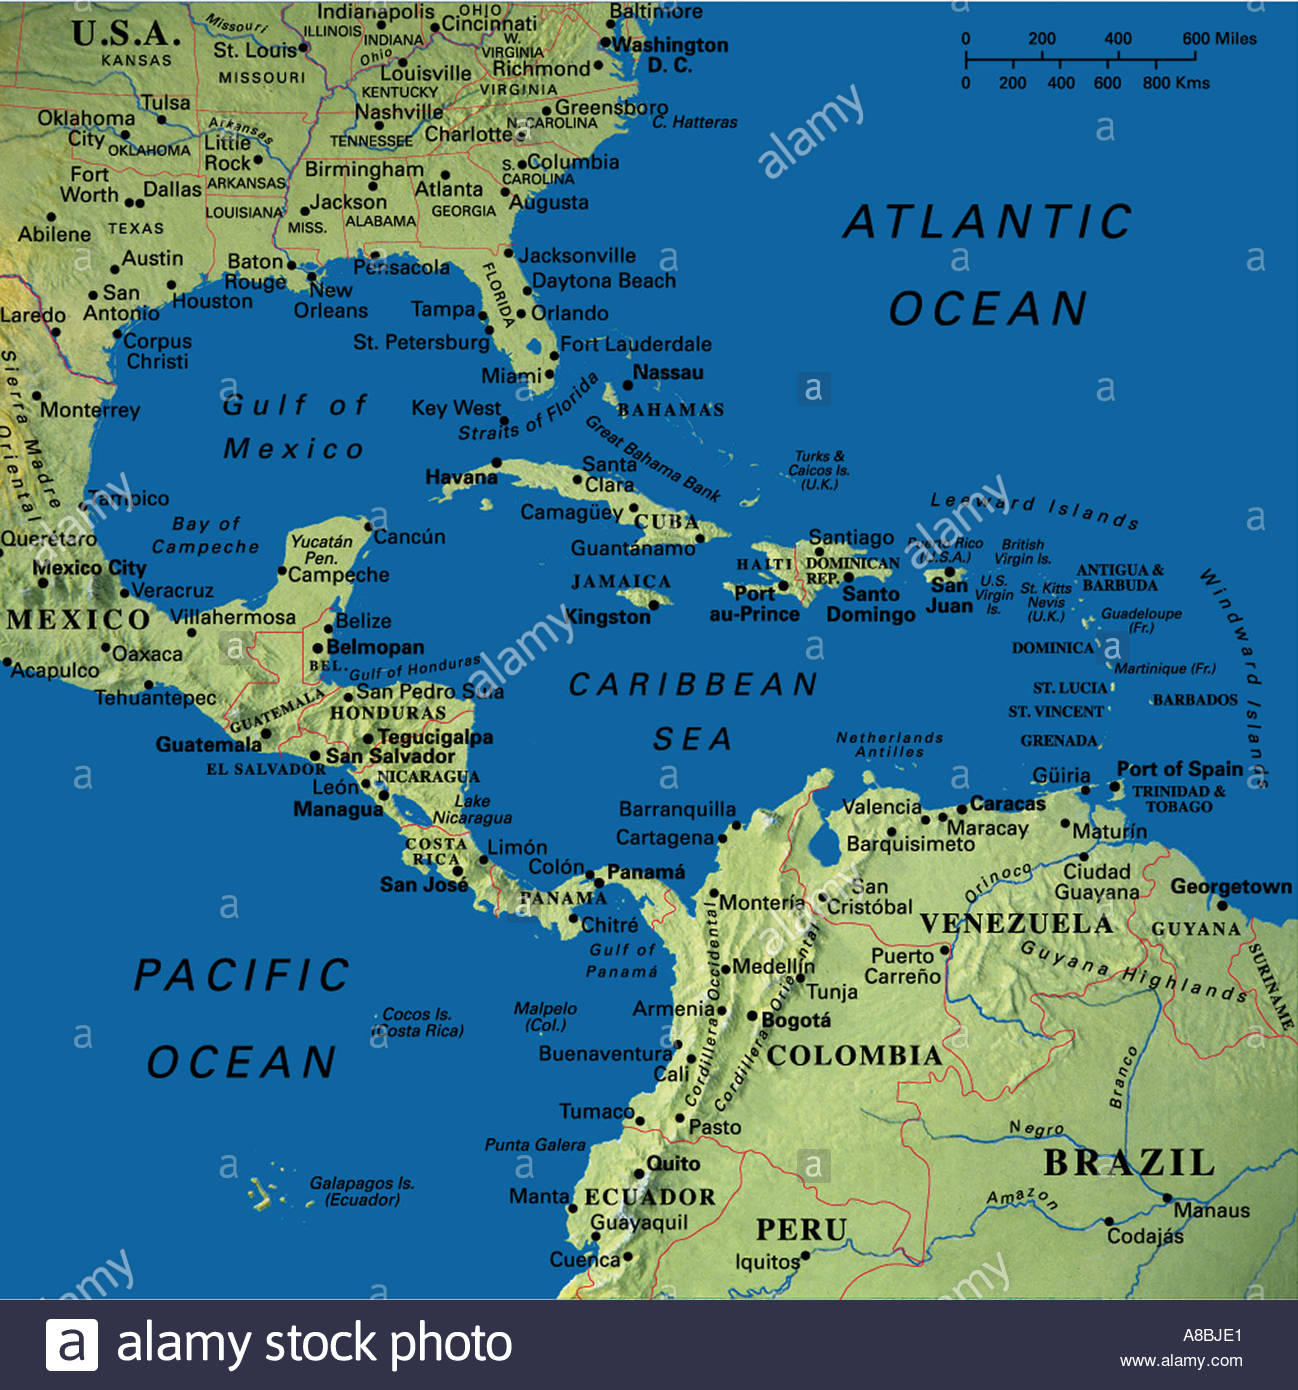 Map Maps USA Florida Canada Mexico Caribbean Cuba South America - Map usa south